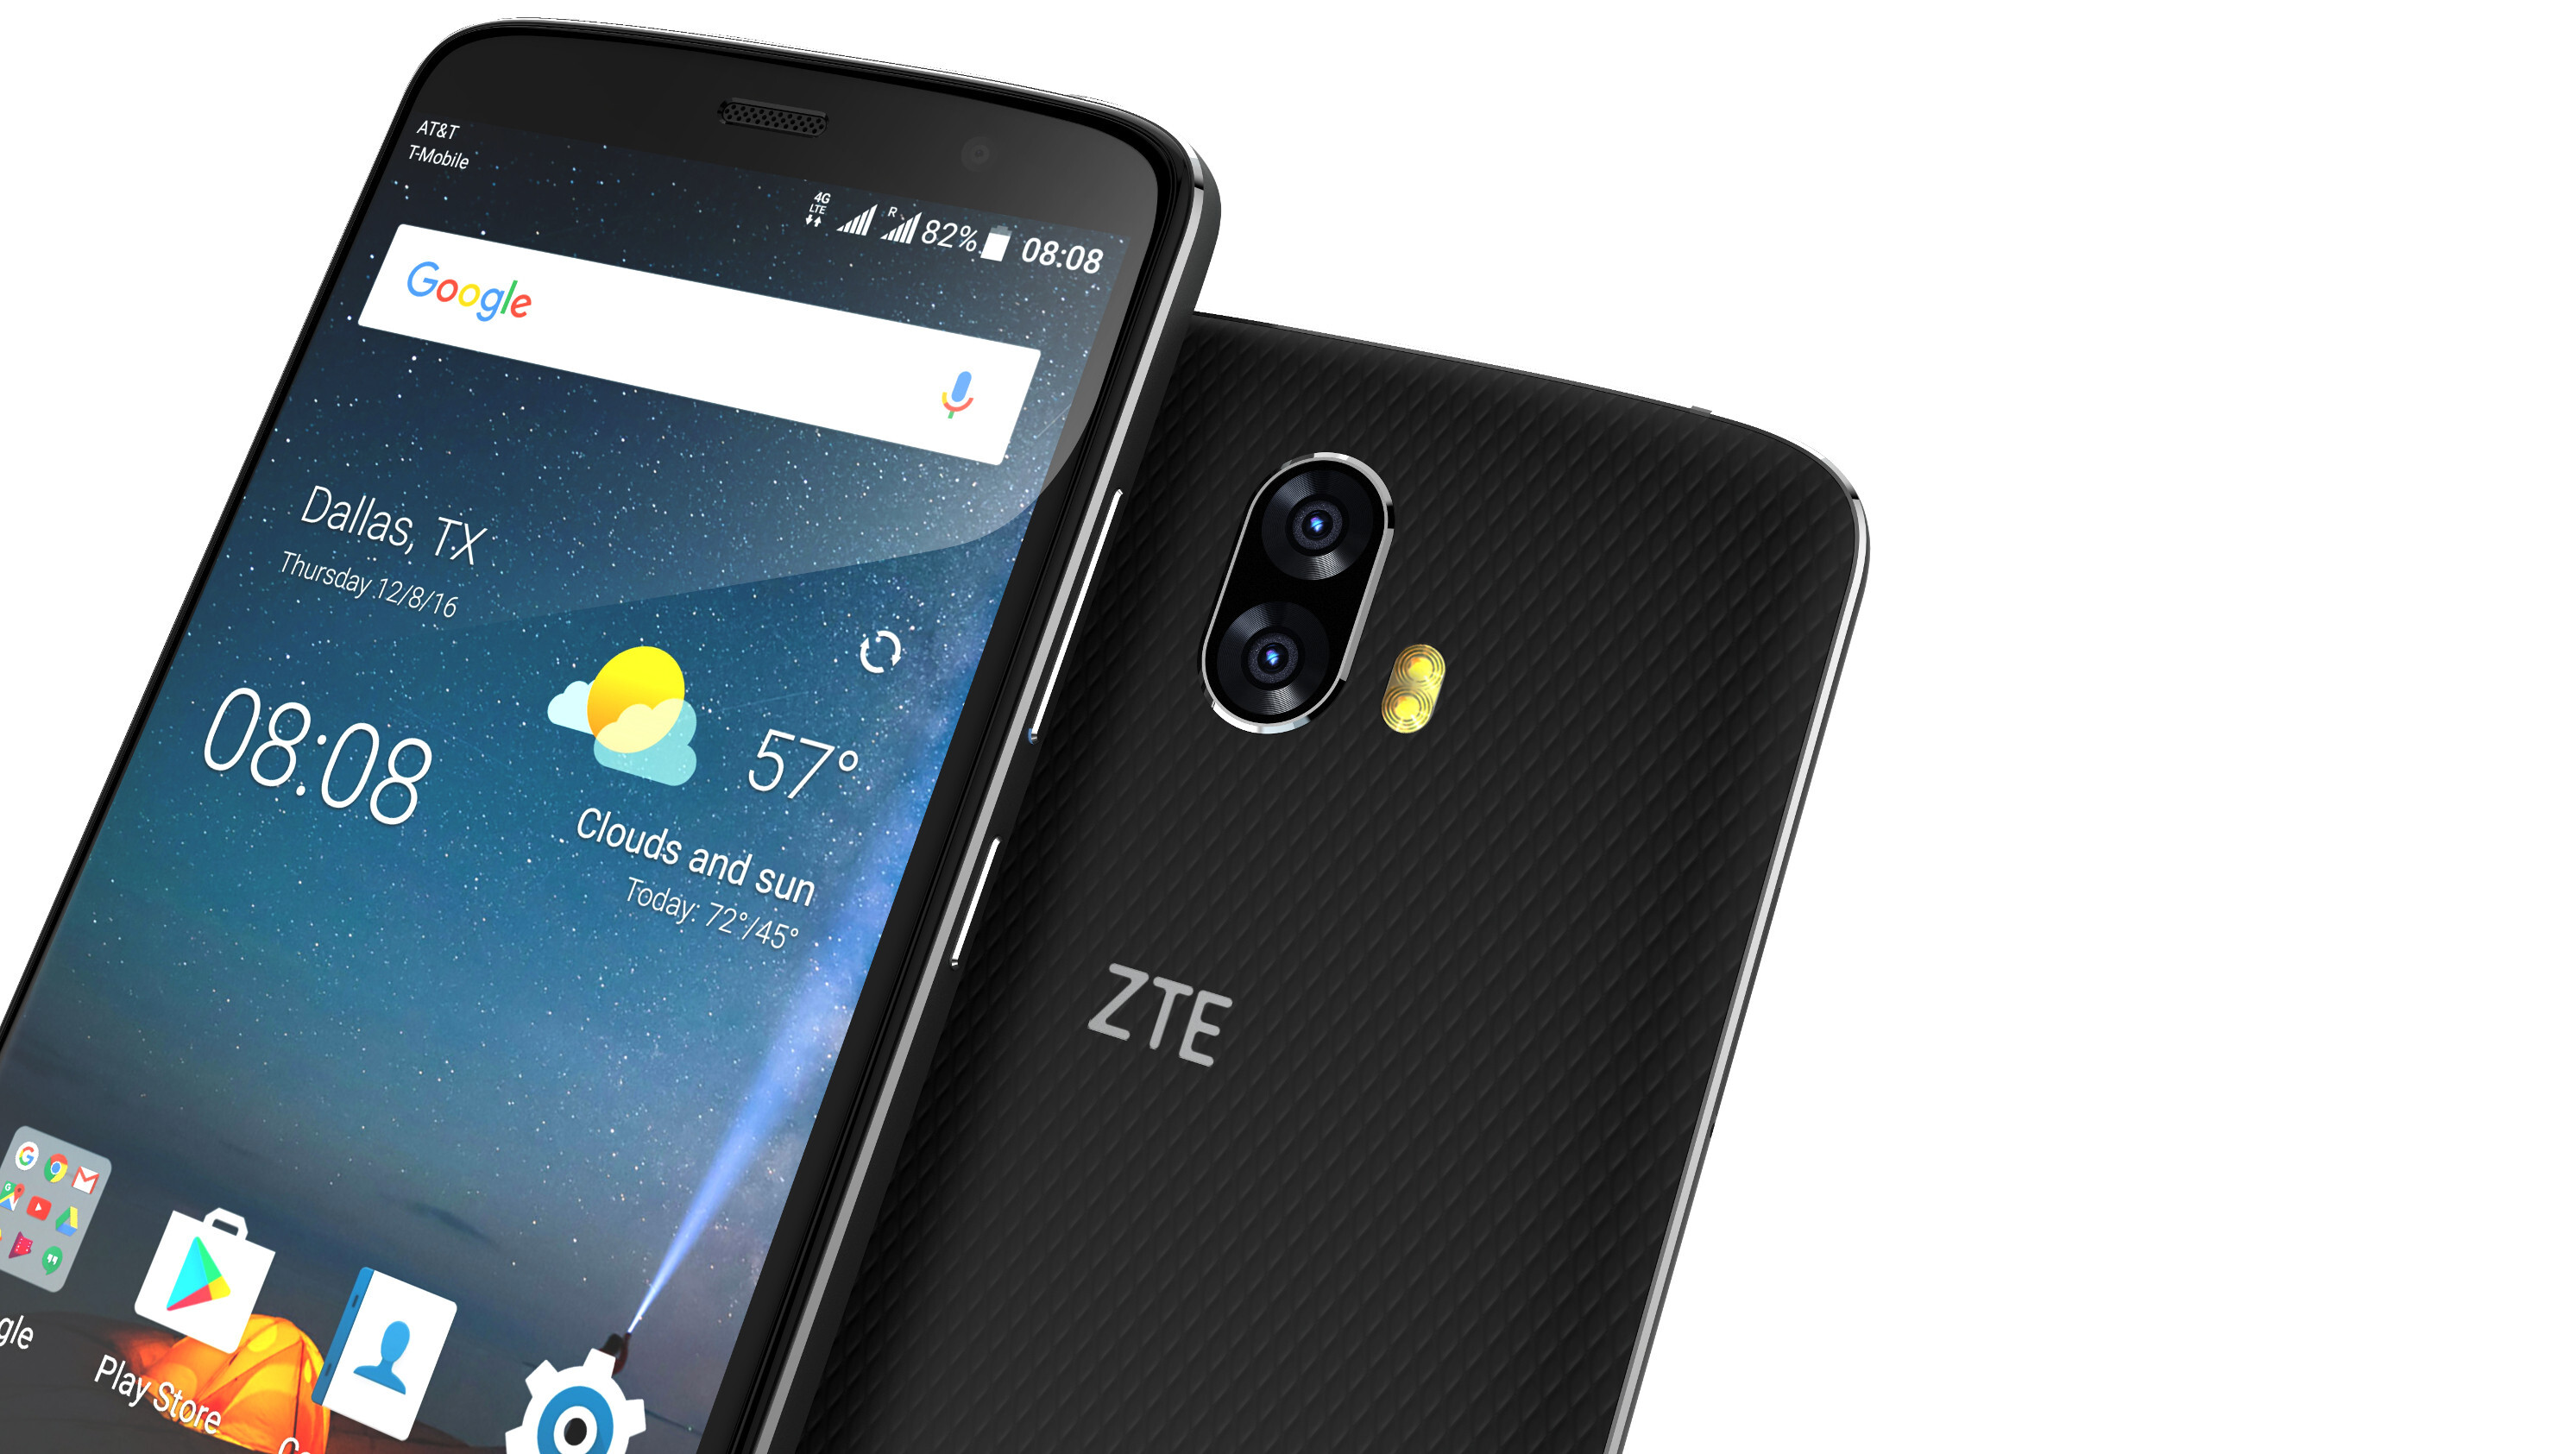 zte blade v8 pro dual camera for cost, Bell